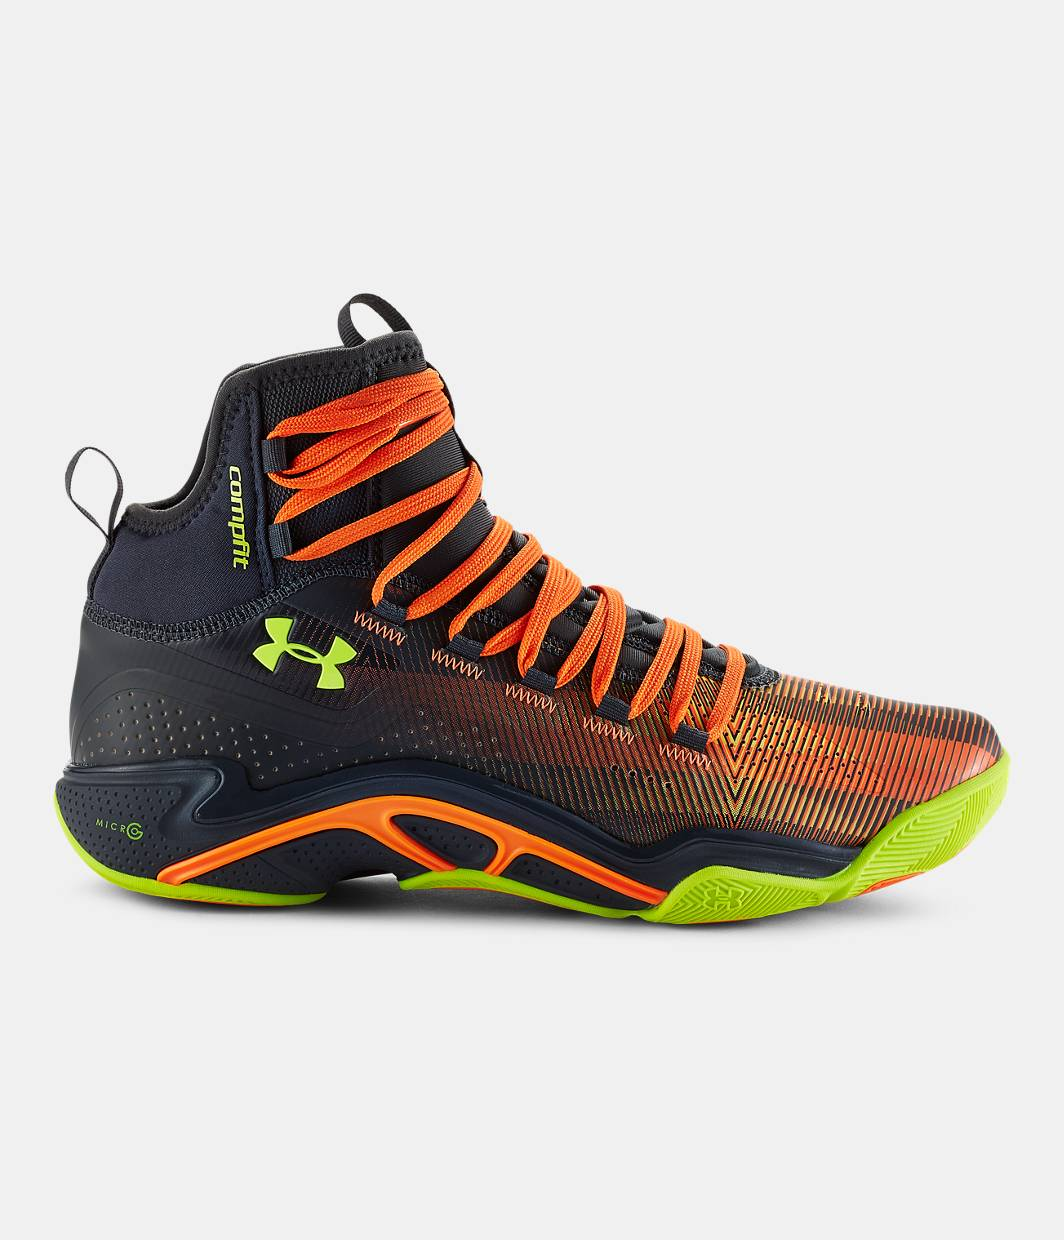 Micro G Basketball Shoes